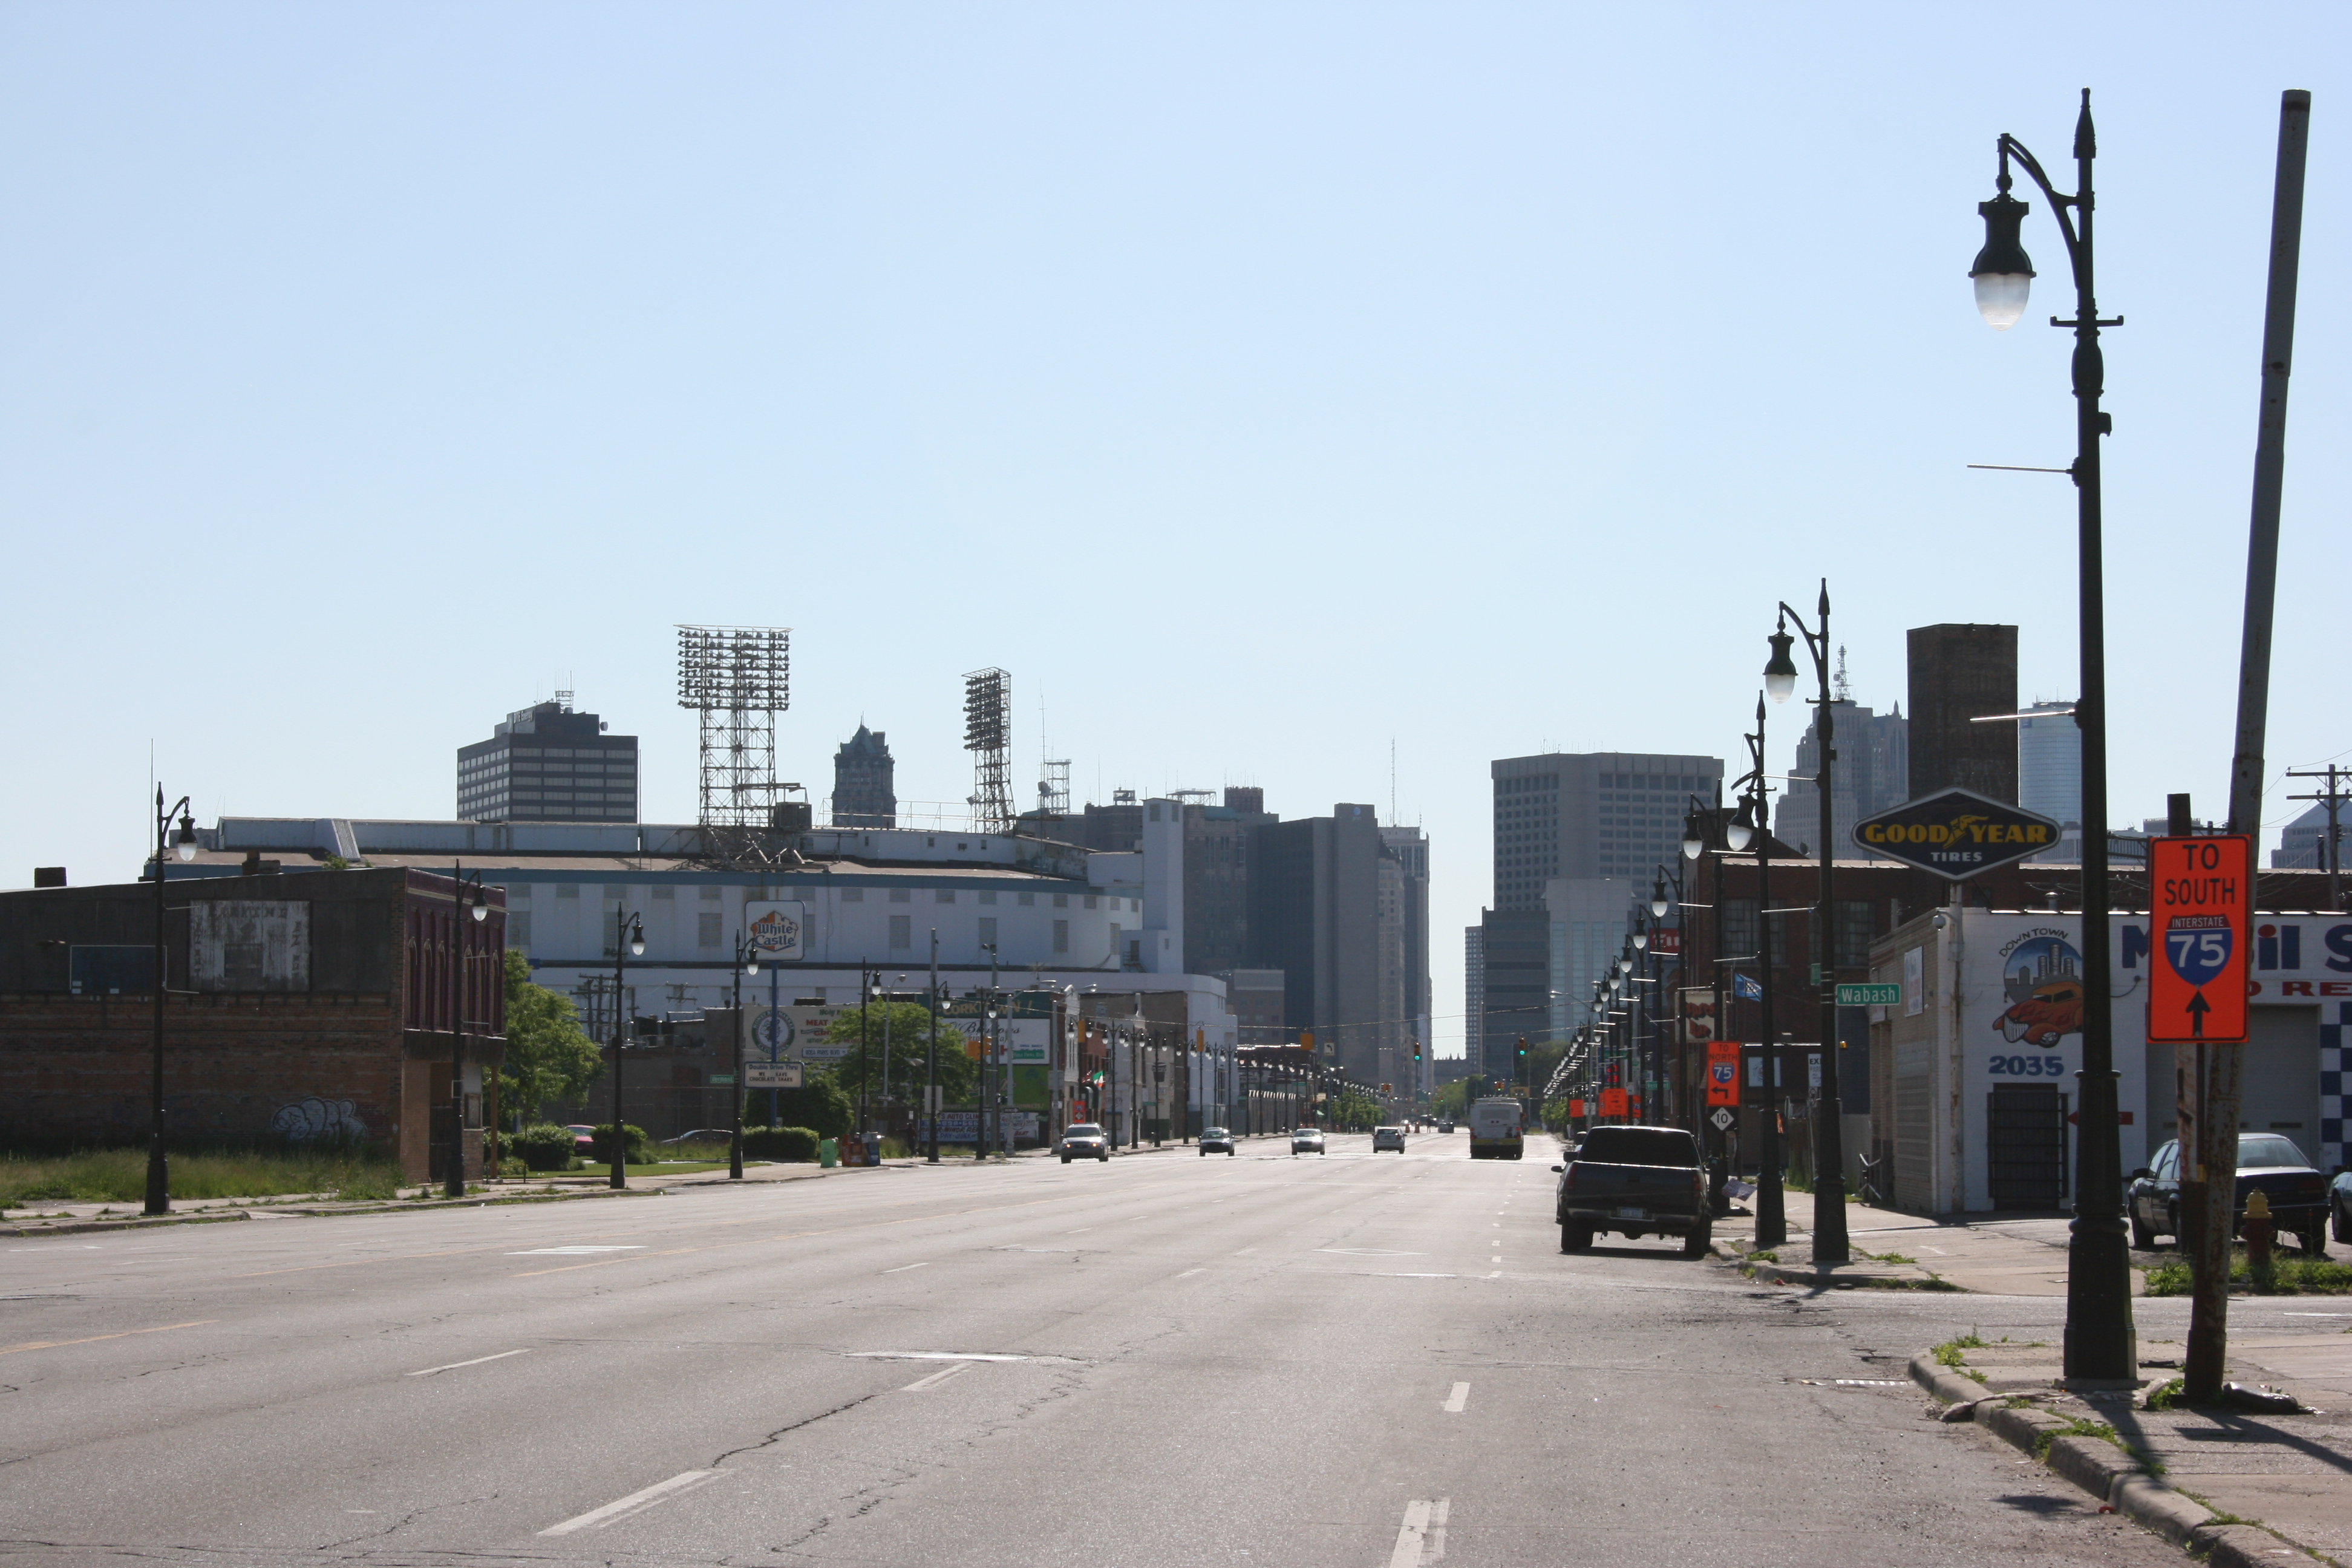 Michigan Avenue from near the station, looking east. The remains of Tiger Stadium are on the left.